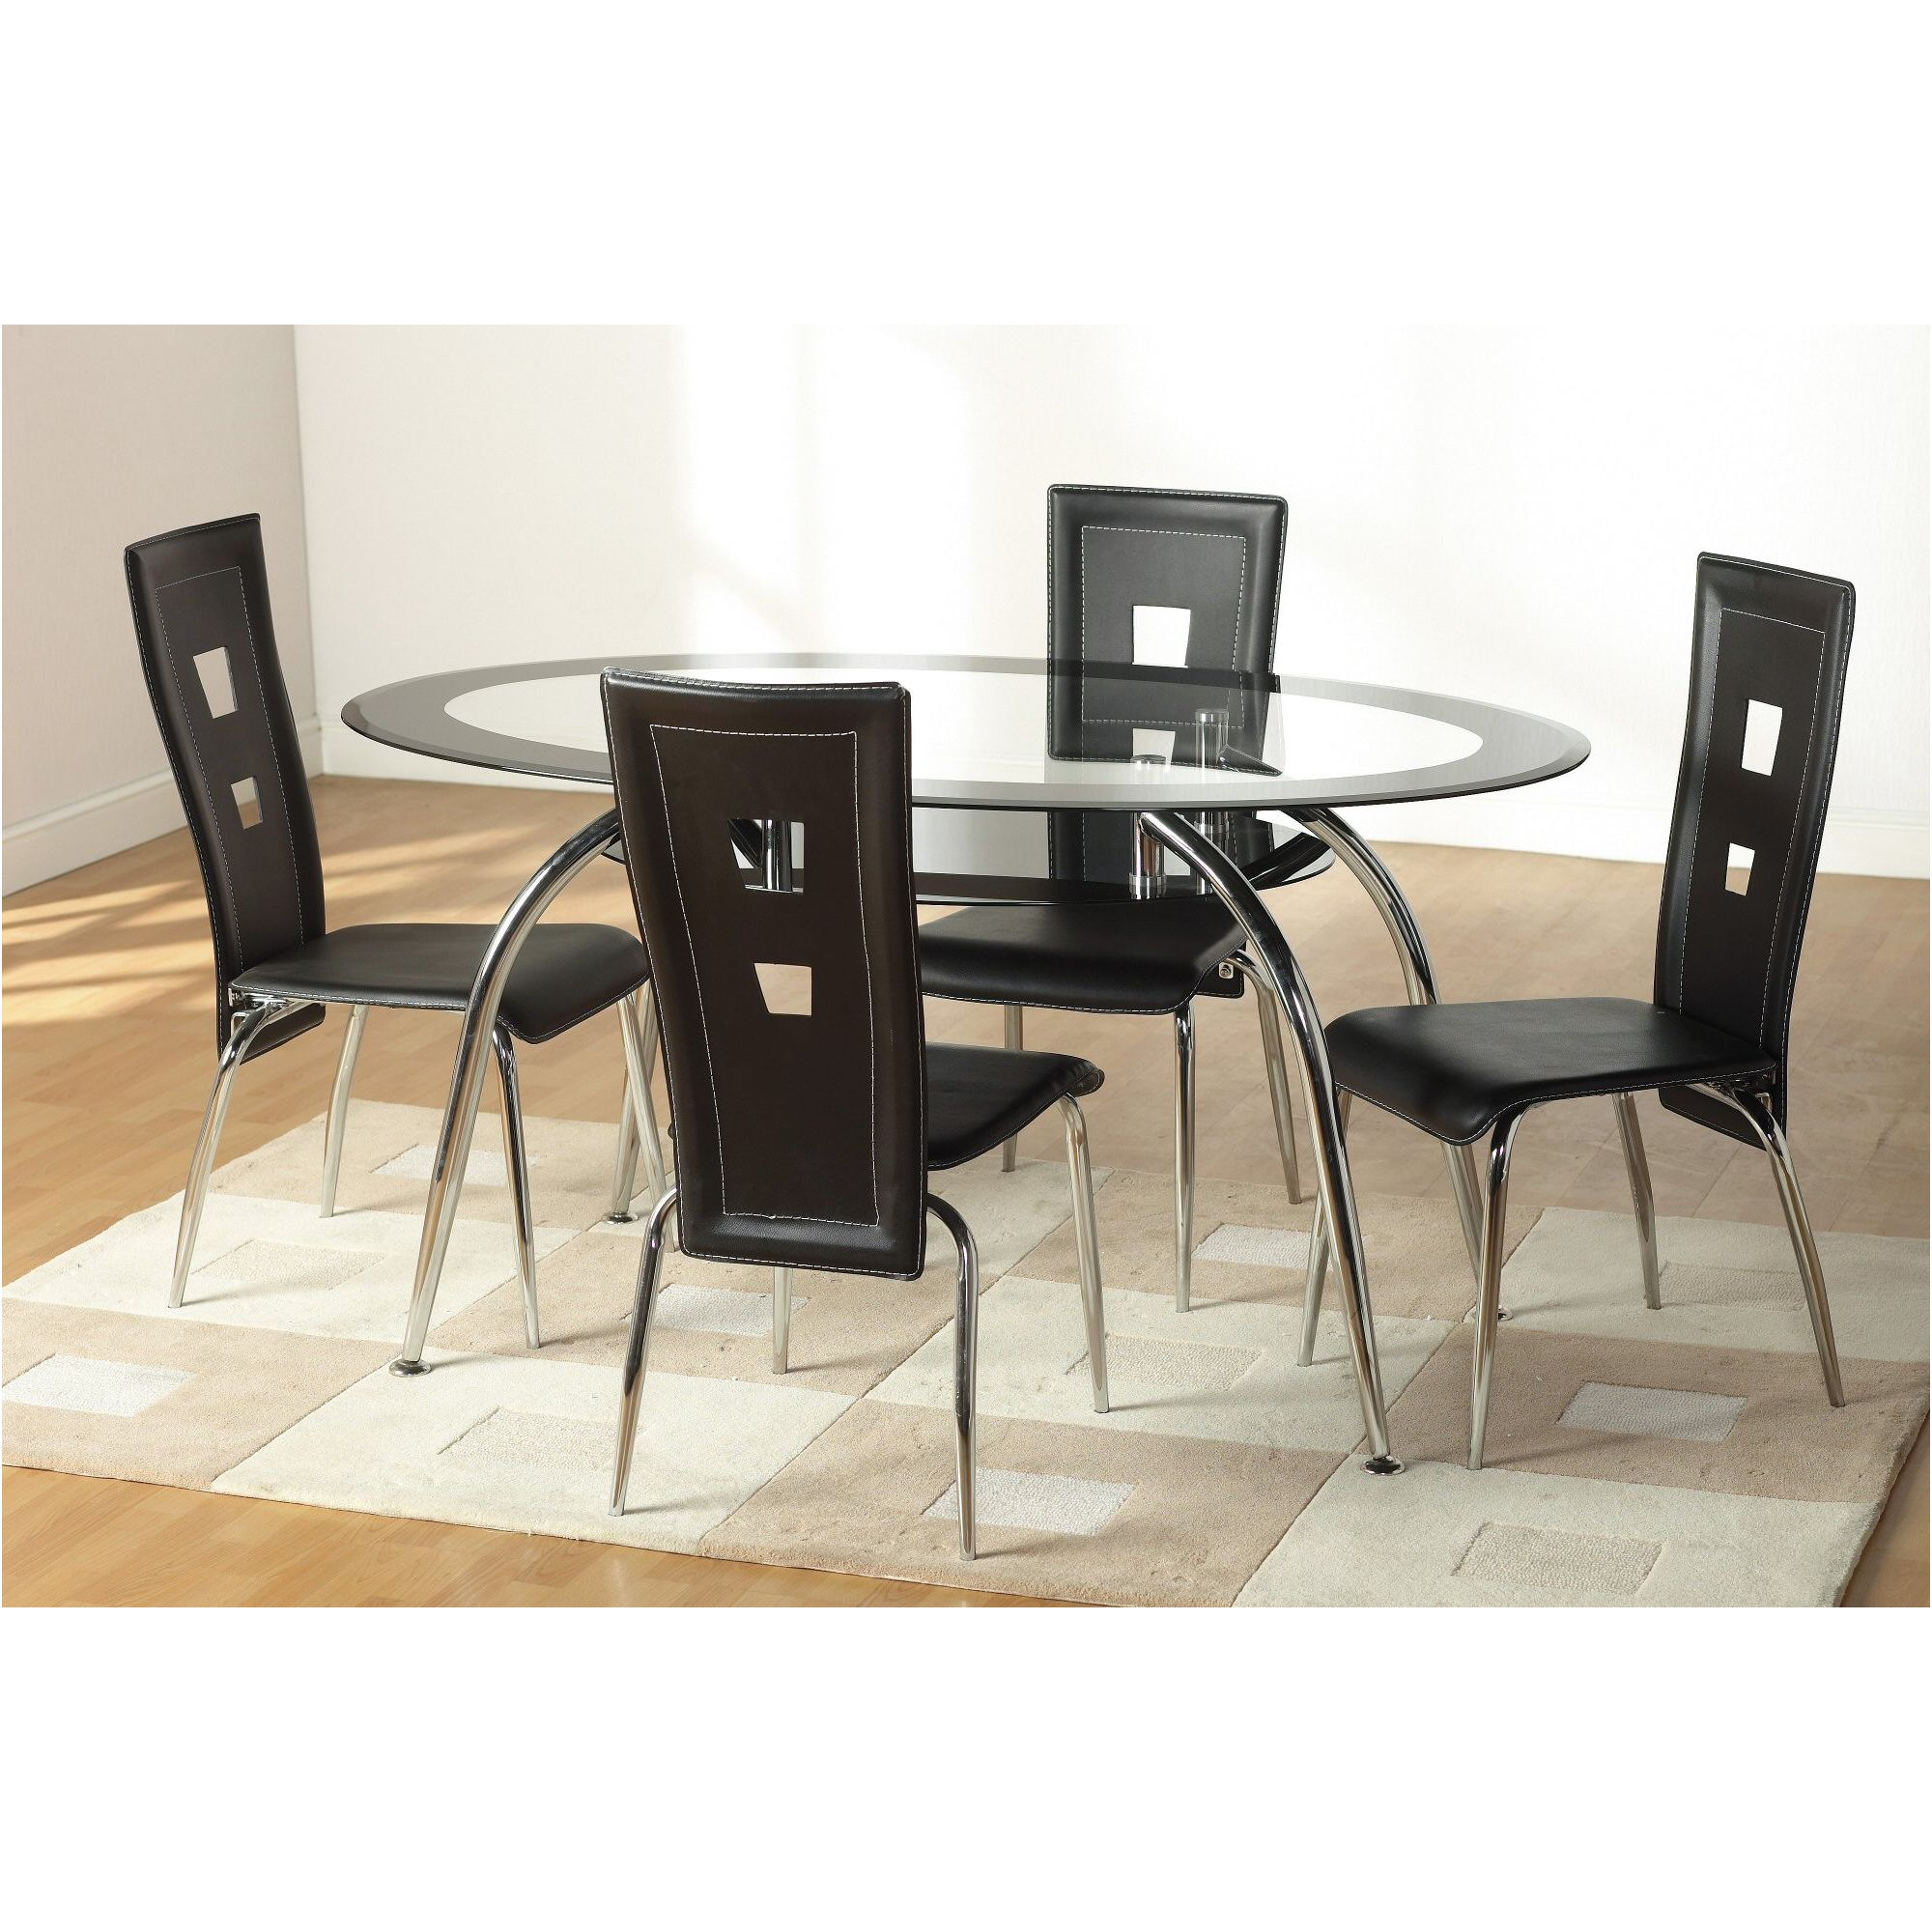 Home Essence Montrose 5 Piece Dining Set with Black Undershelf at Tesco Direct